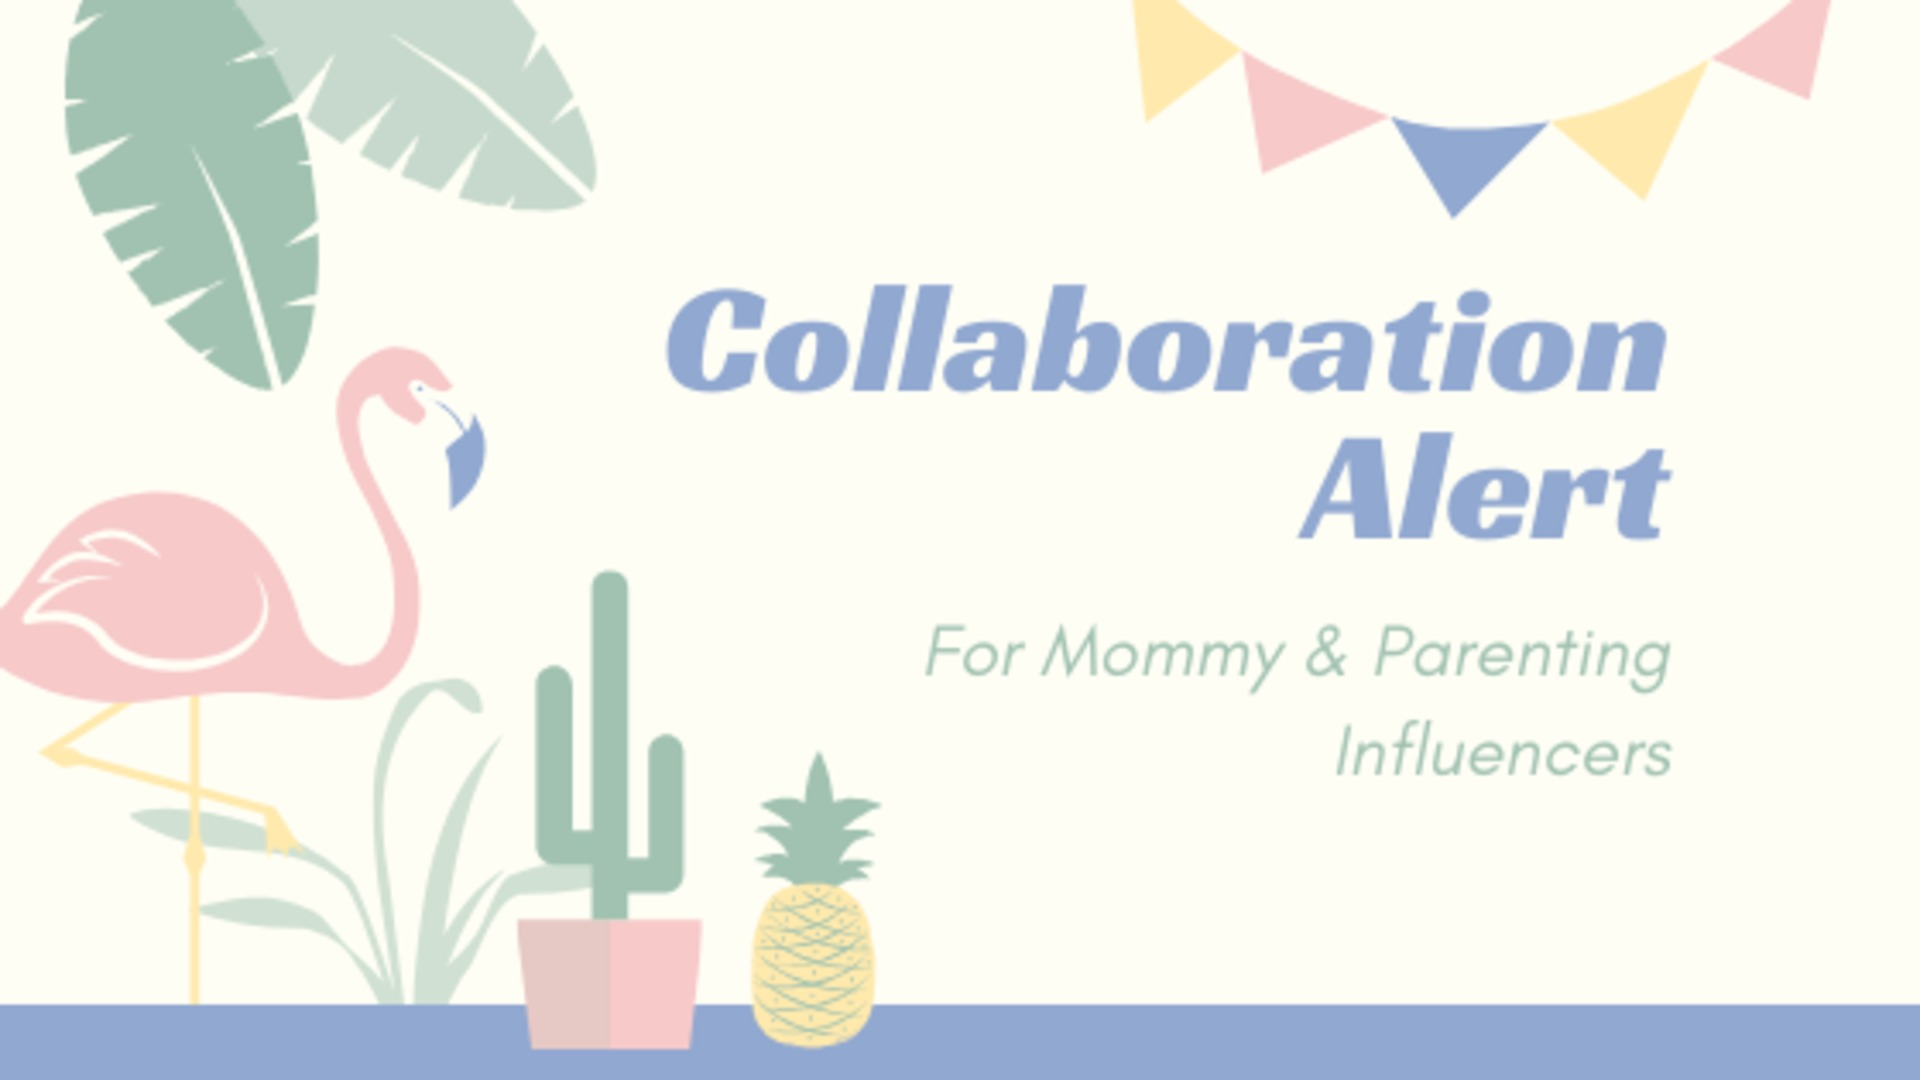 Collab Alert! For Mommy & Parenting Influencers image